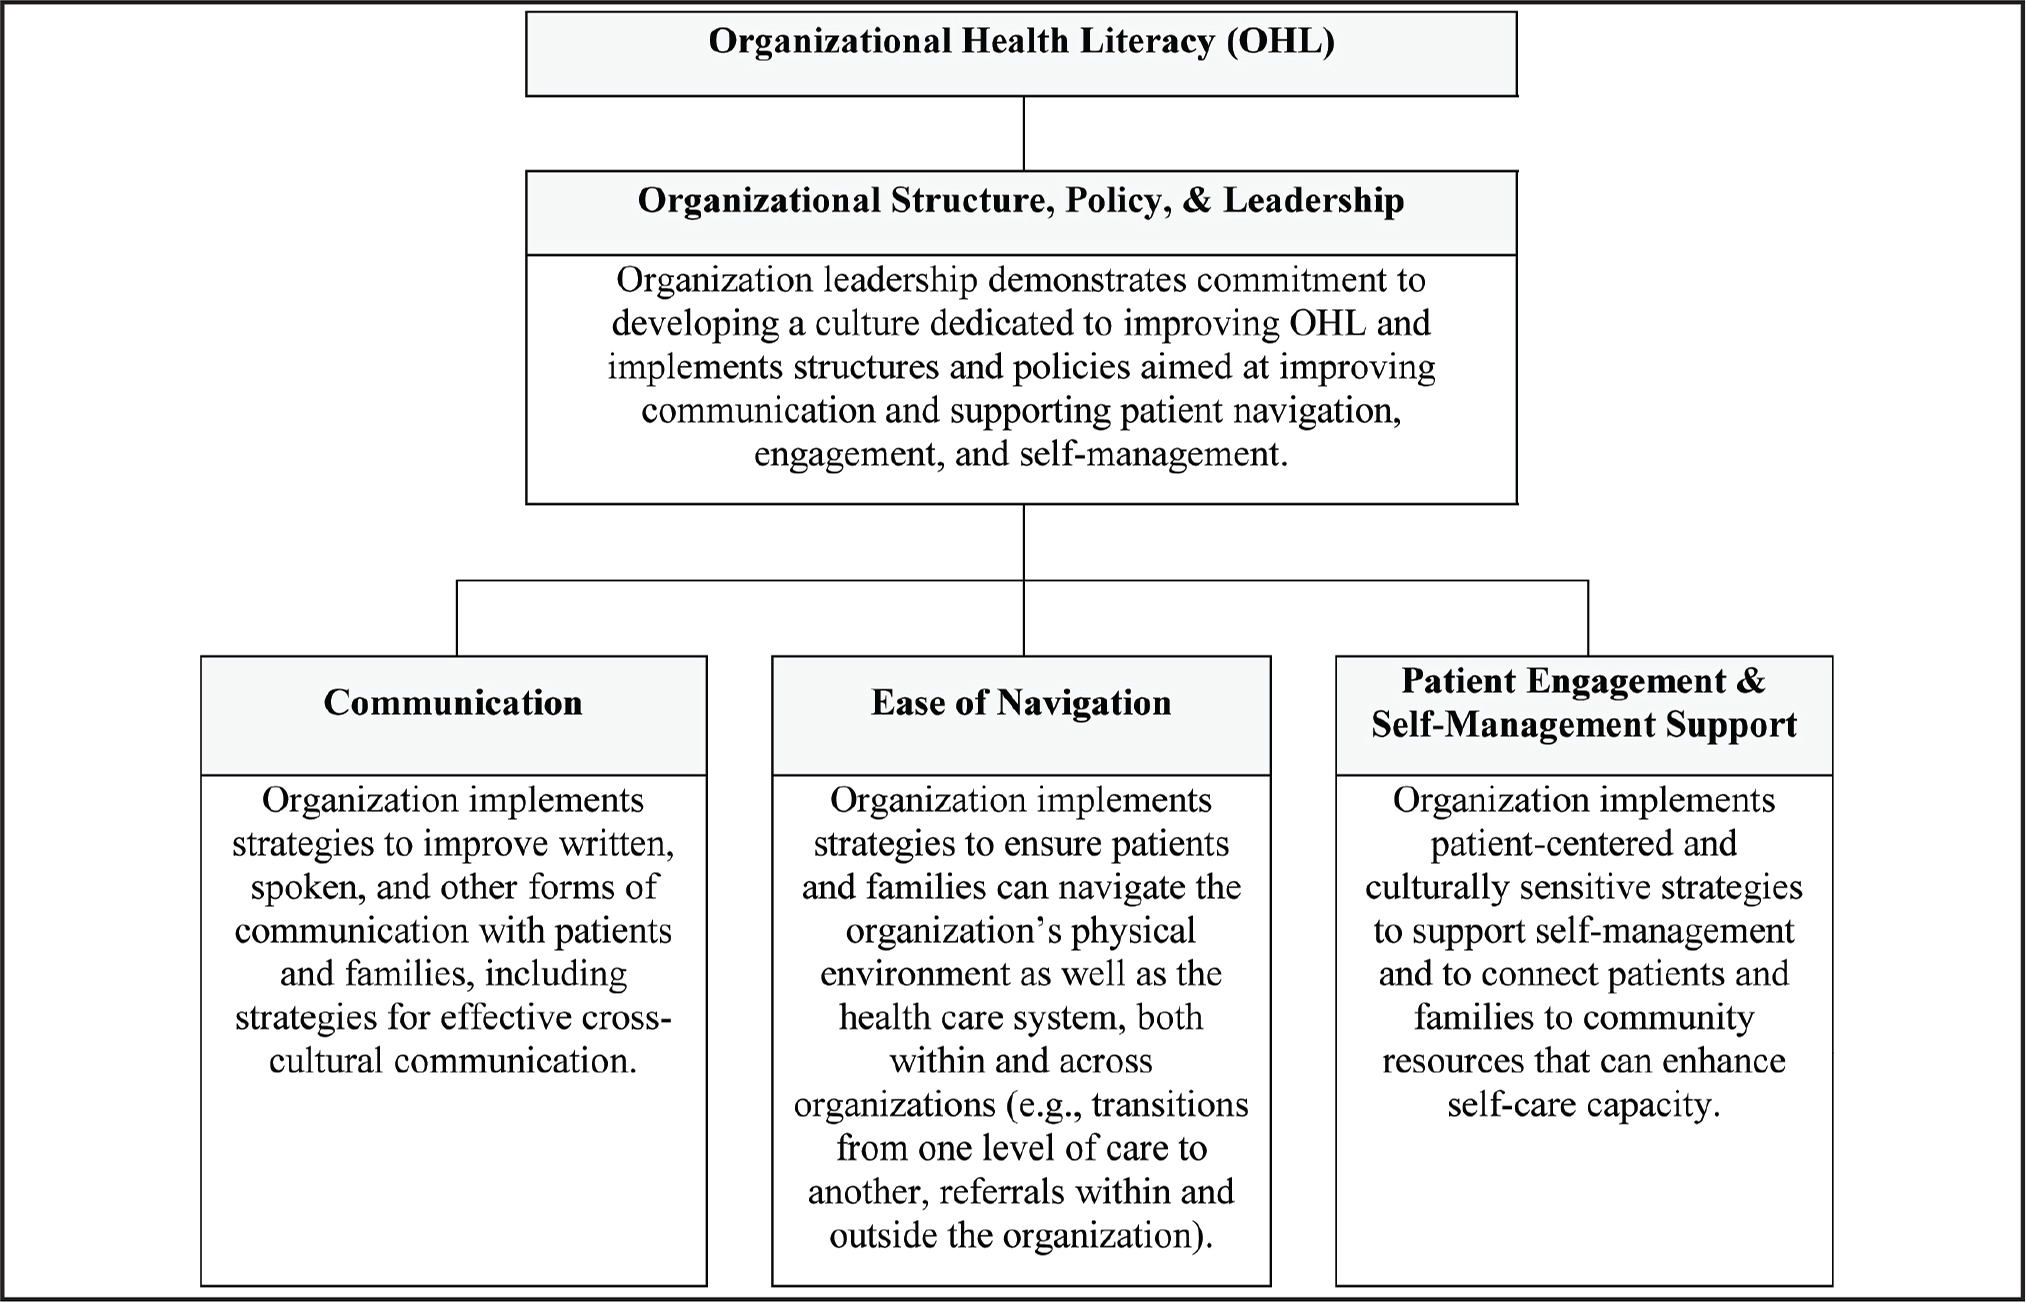 Conceptual framework of organizational health literacy.